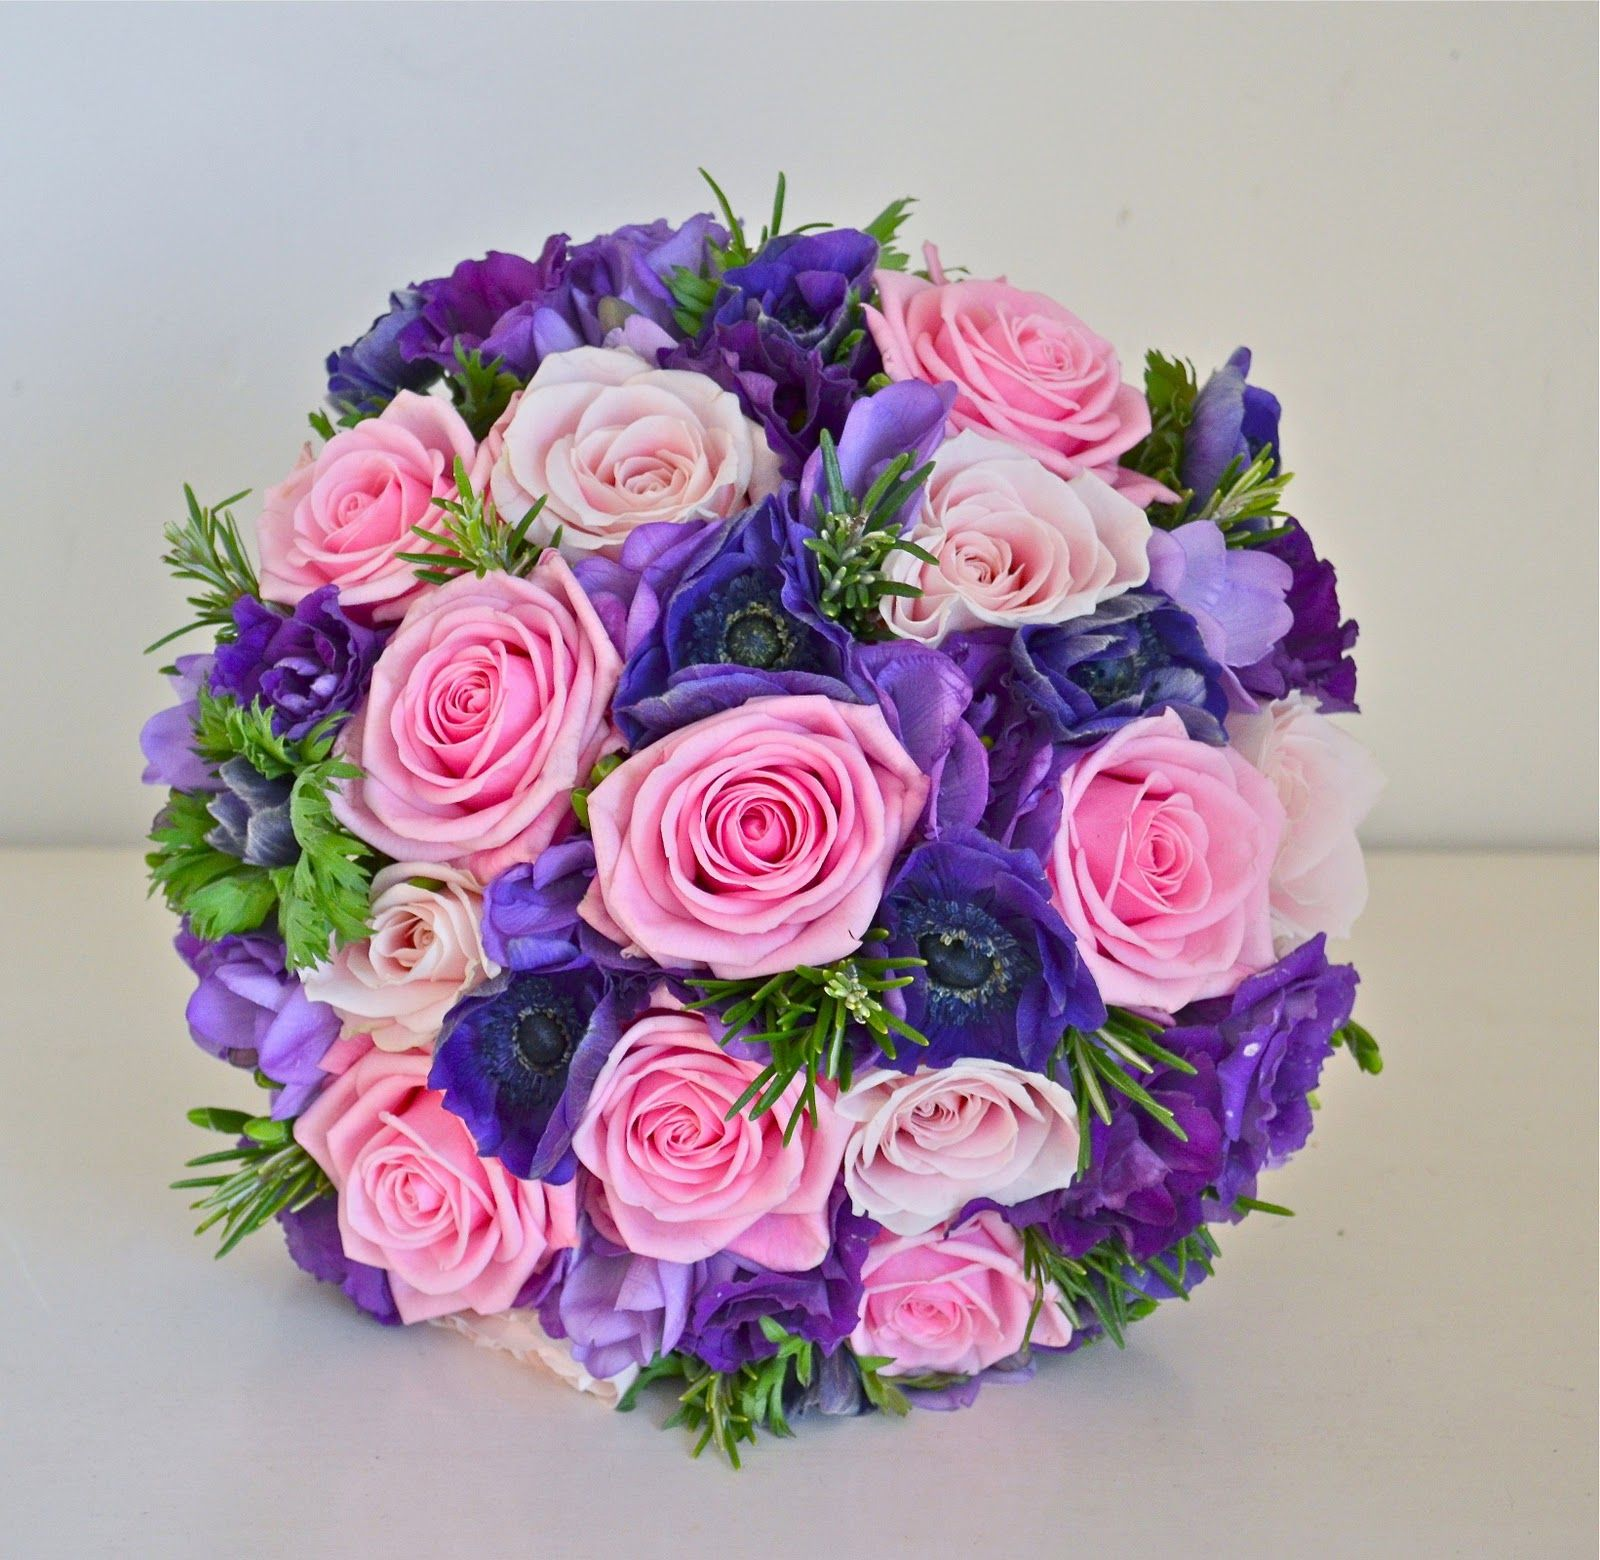 Pictures Of Pink Purple Wedding Bouquets Flowers Wedding Photos